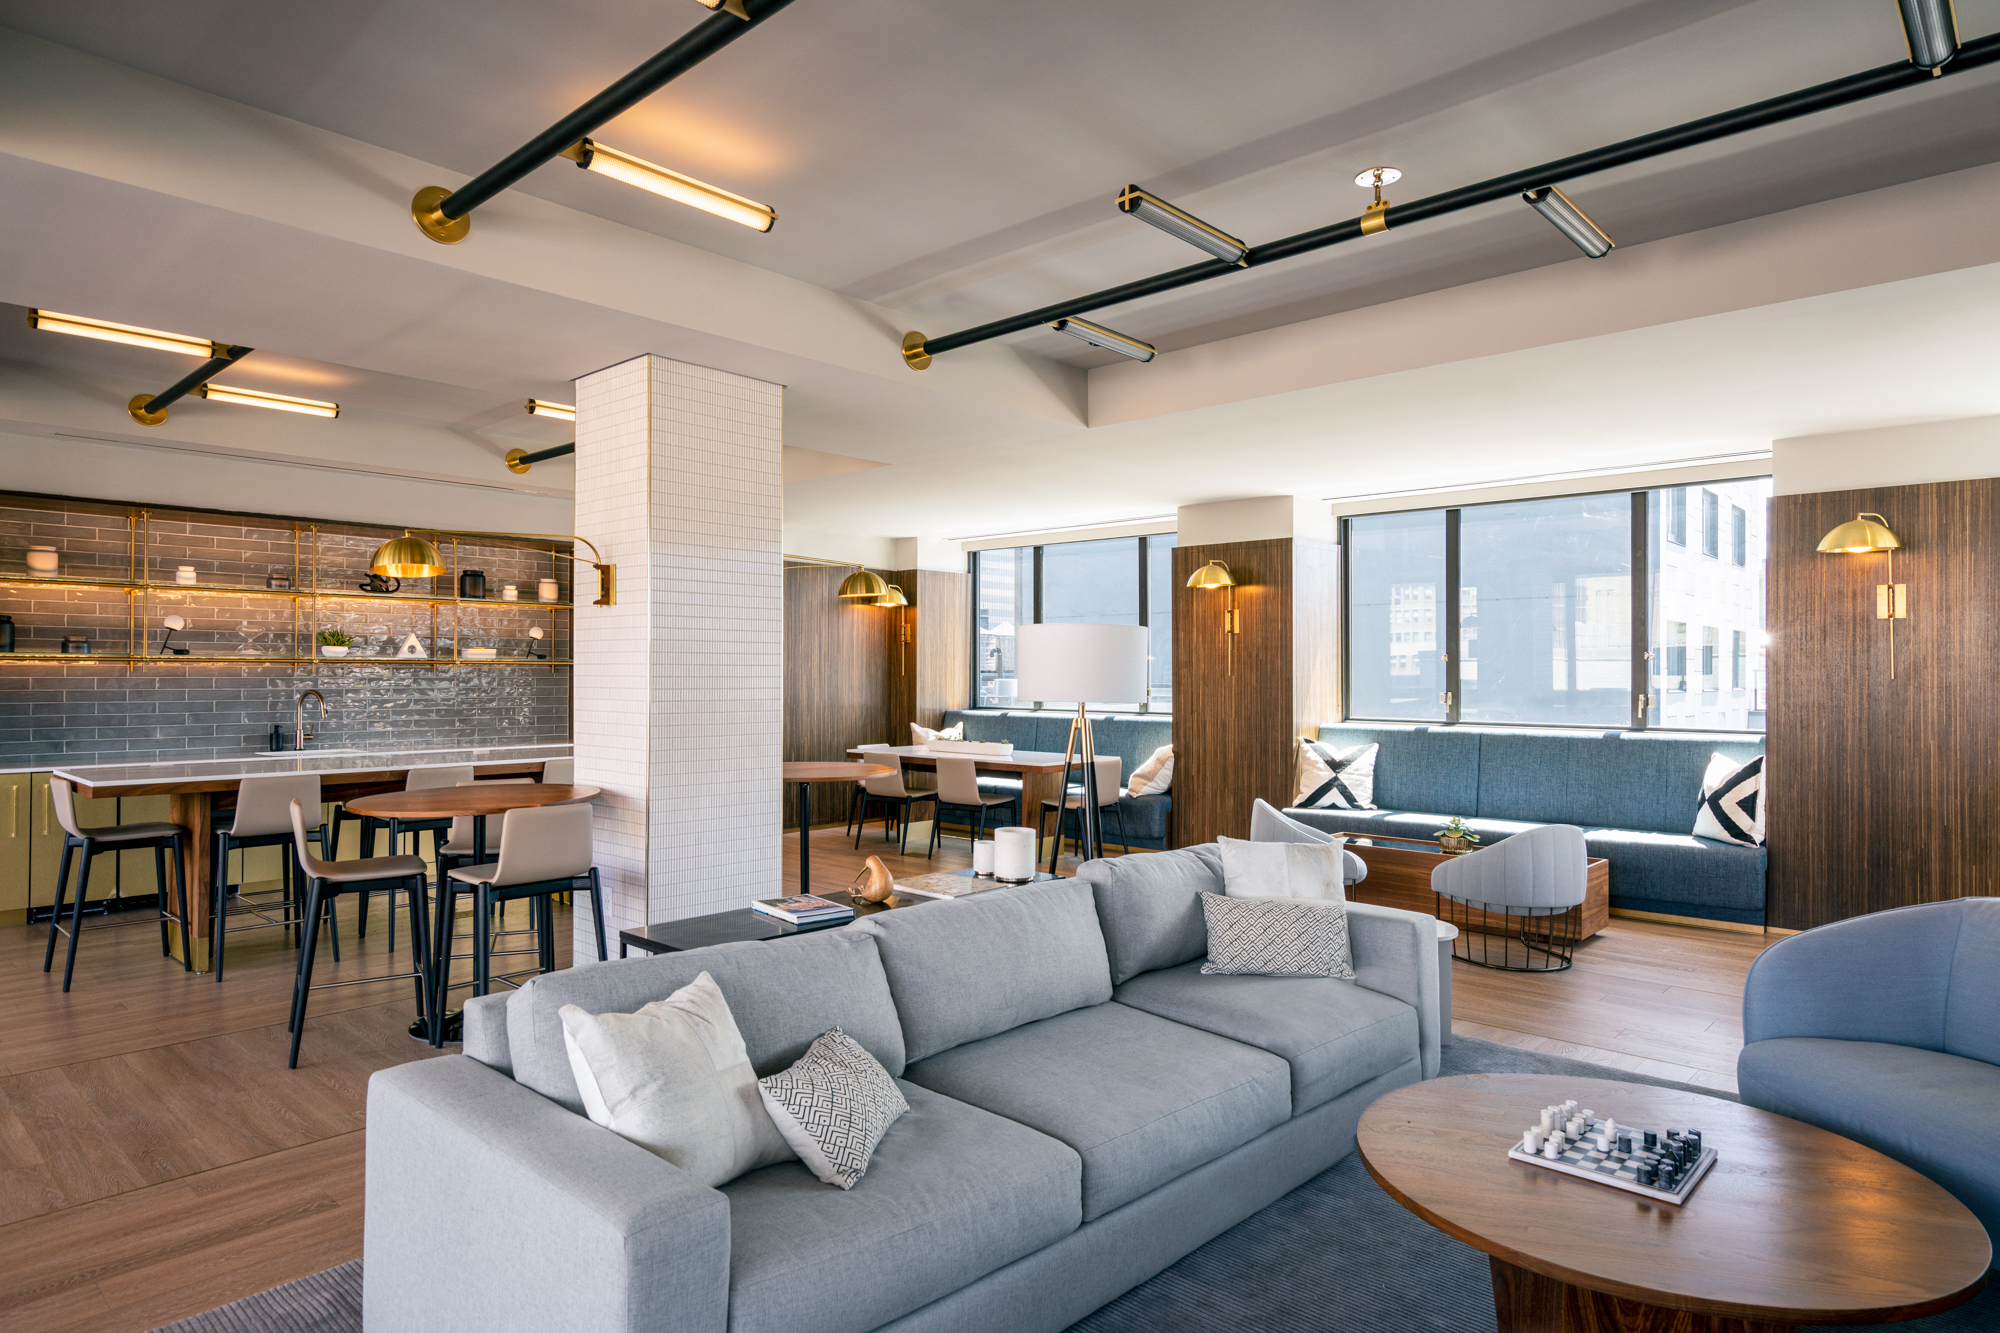 Tenants Can Escape the Hustle and Bustle of Day-to-Day Life in Hollingsworth's Lobby